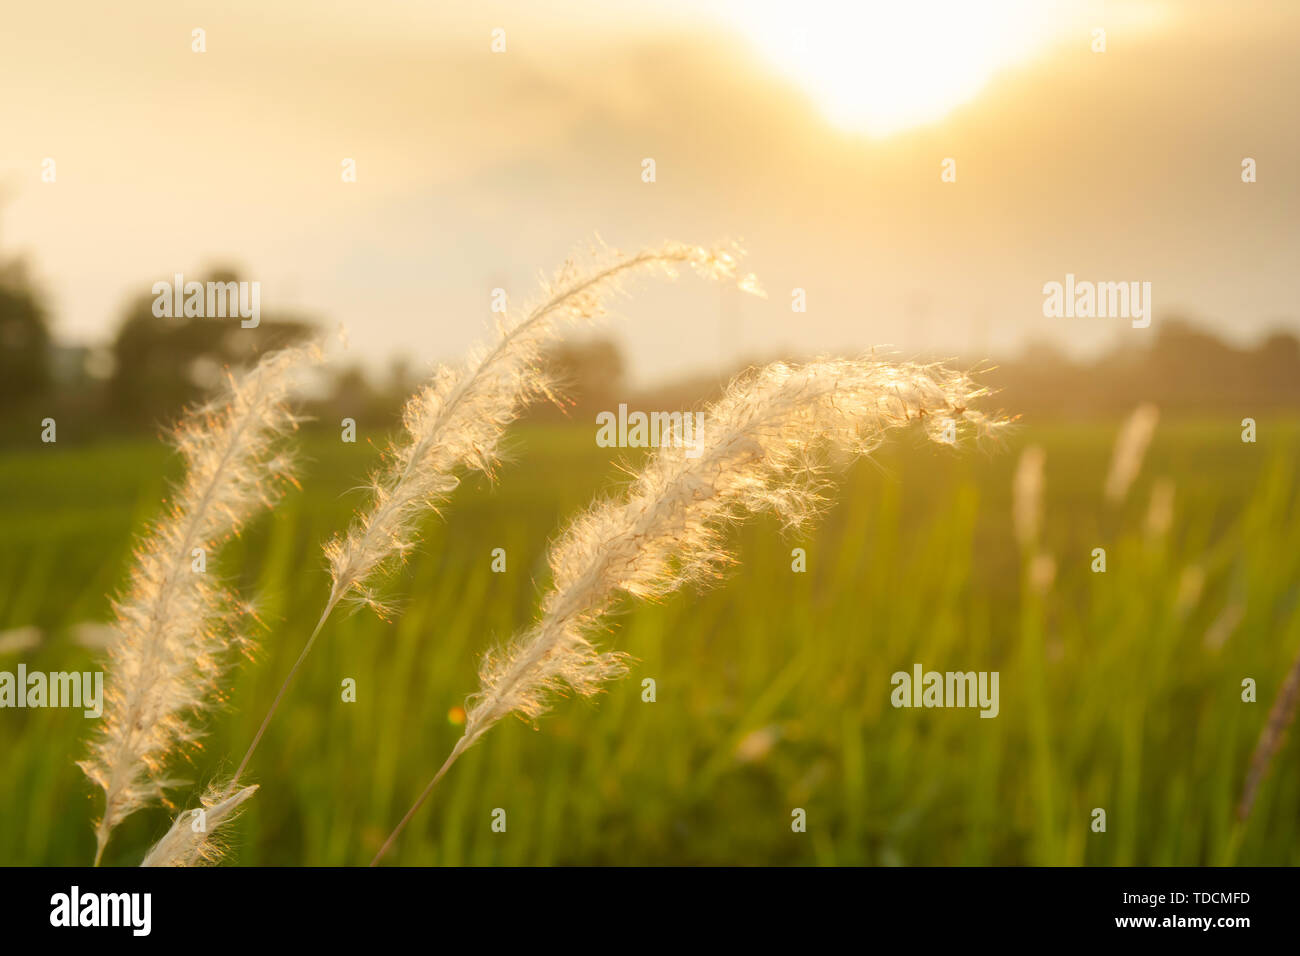 Poaceae grass flower. Imperata cylindica (L.) P. Beauv, poaceae (GRAMINEAE) in the rays of the rising sunset background. - Stock Image